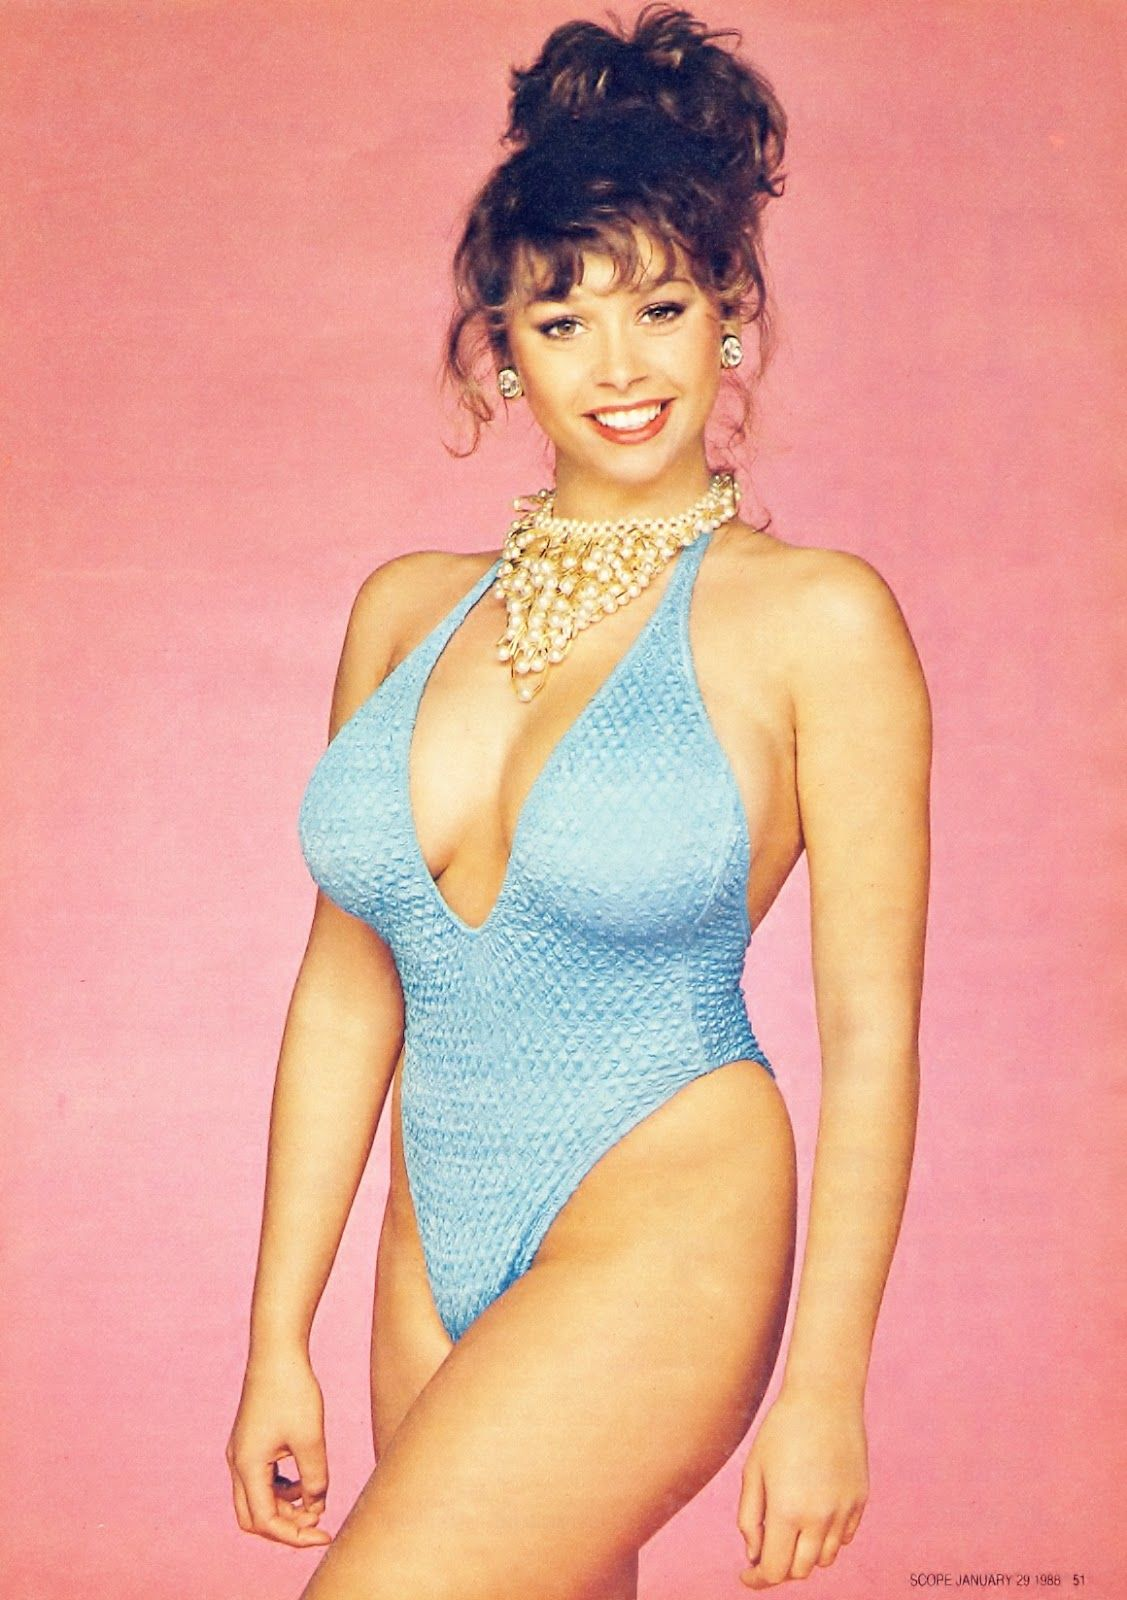 Image of Maria Whittaker Maria Whittaker, Tina Louise, Blue One Piece, Pin Up Models, Glamour